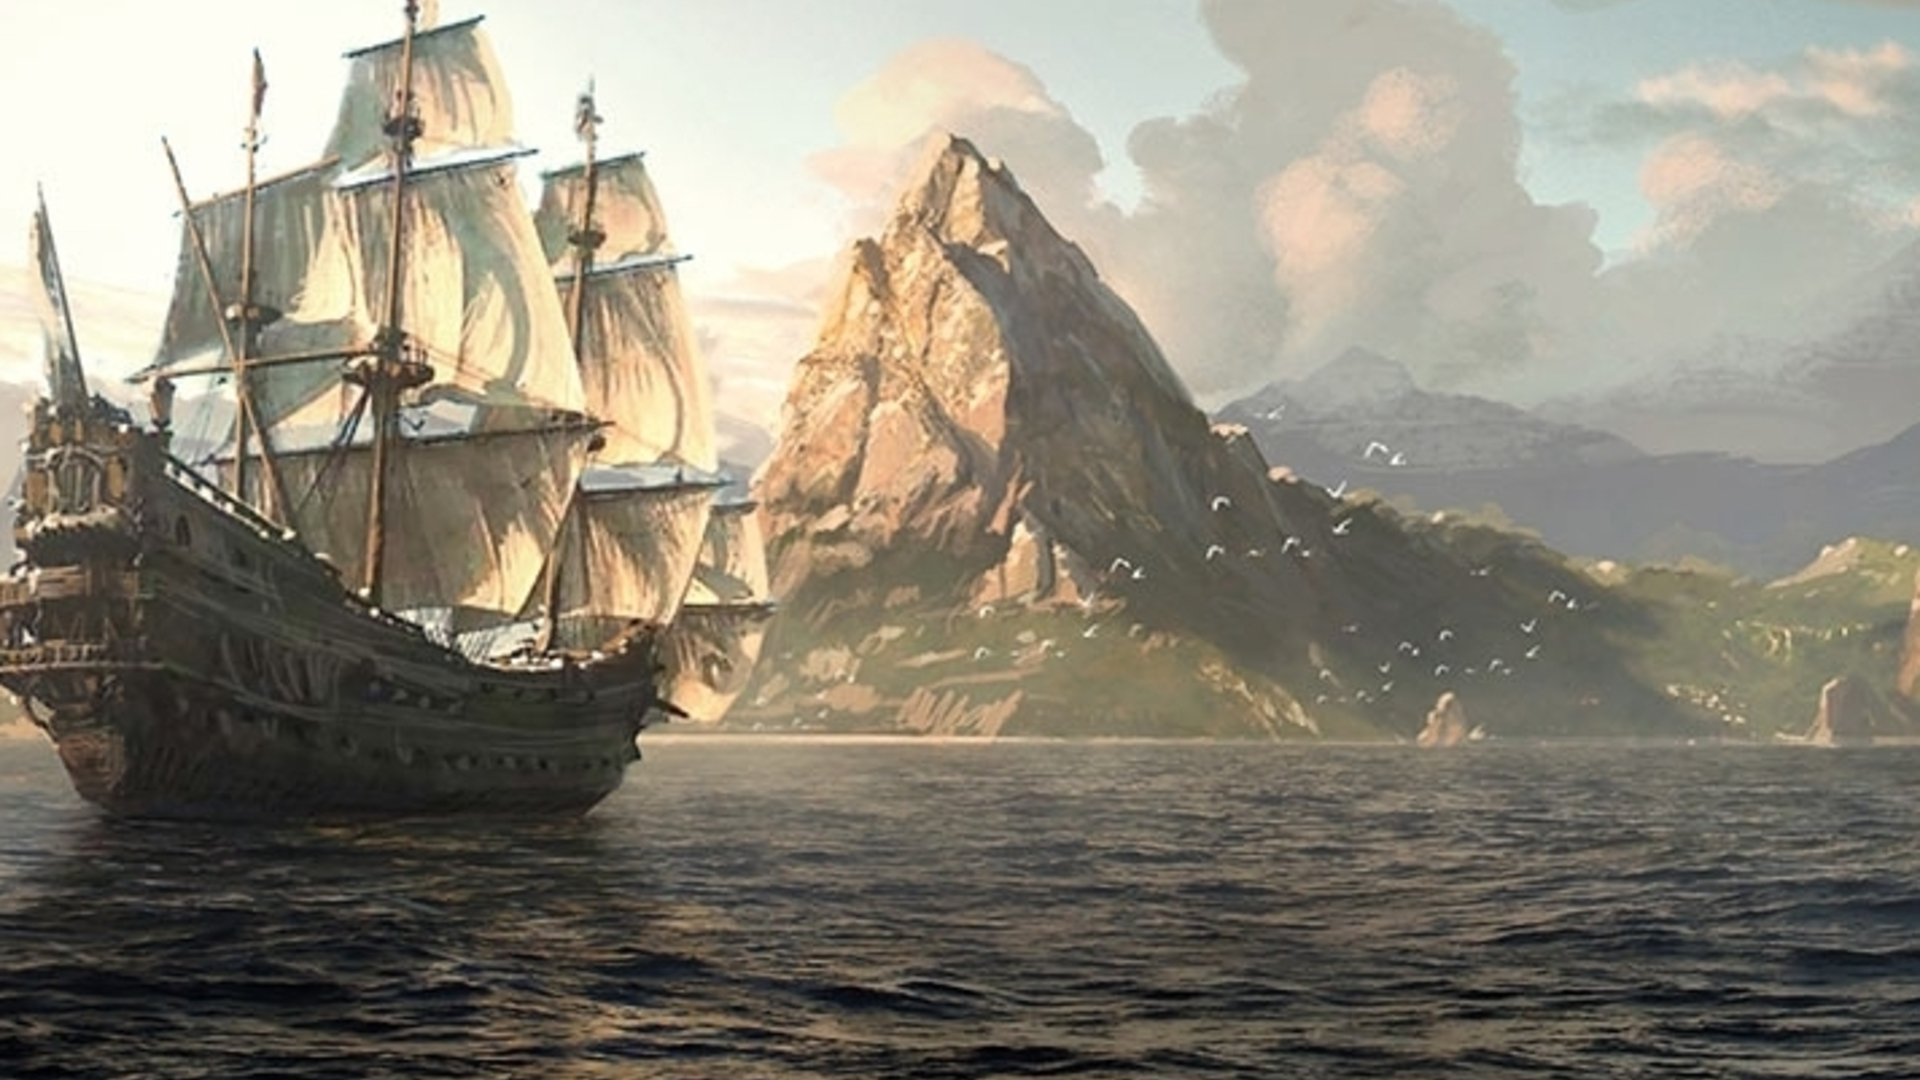 Assassin's Creed 4's open world takes half an hour to sail across